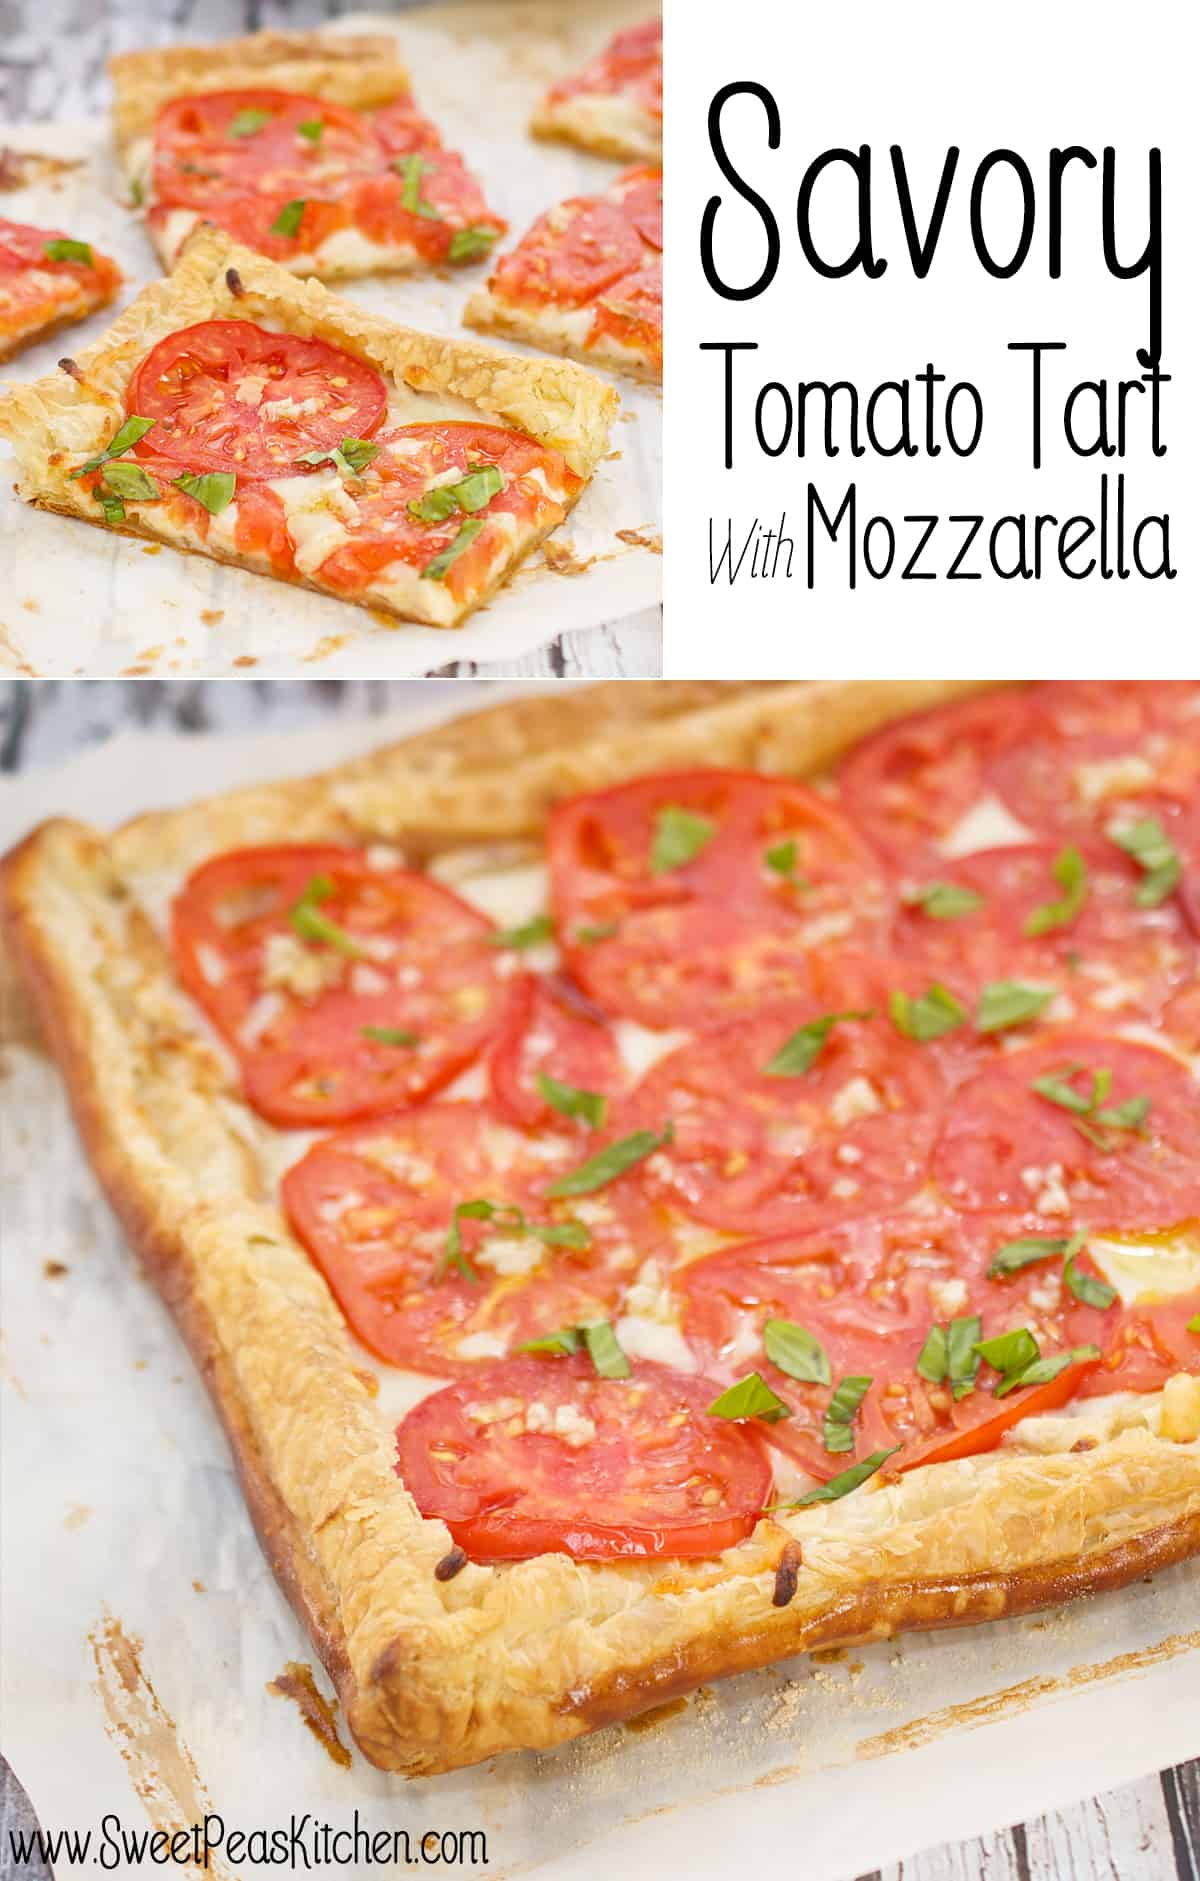 Savory Tomato Tart Recipe With Mozzarella